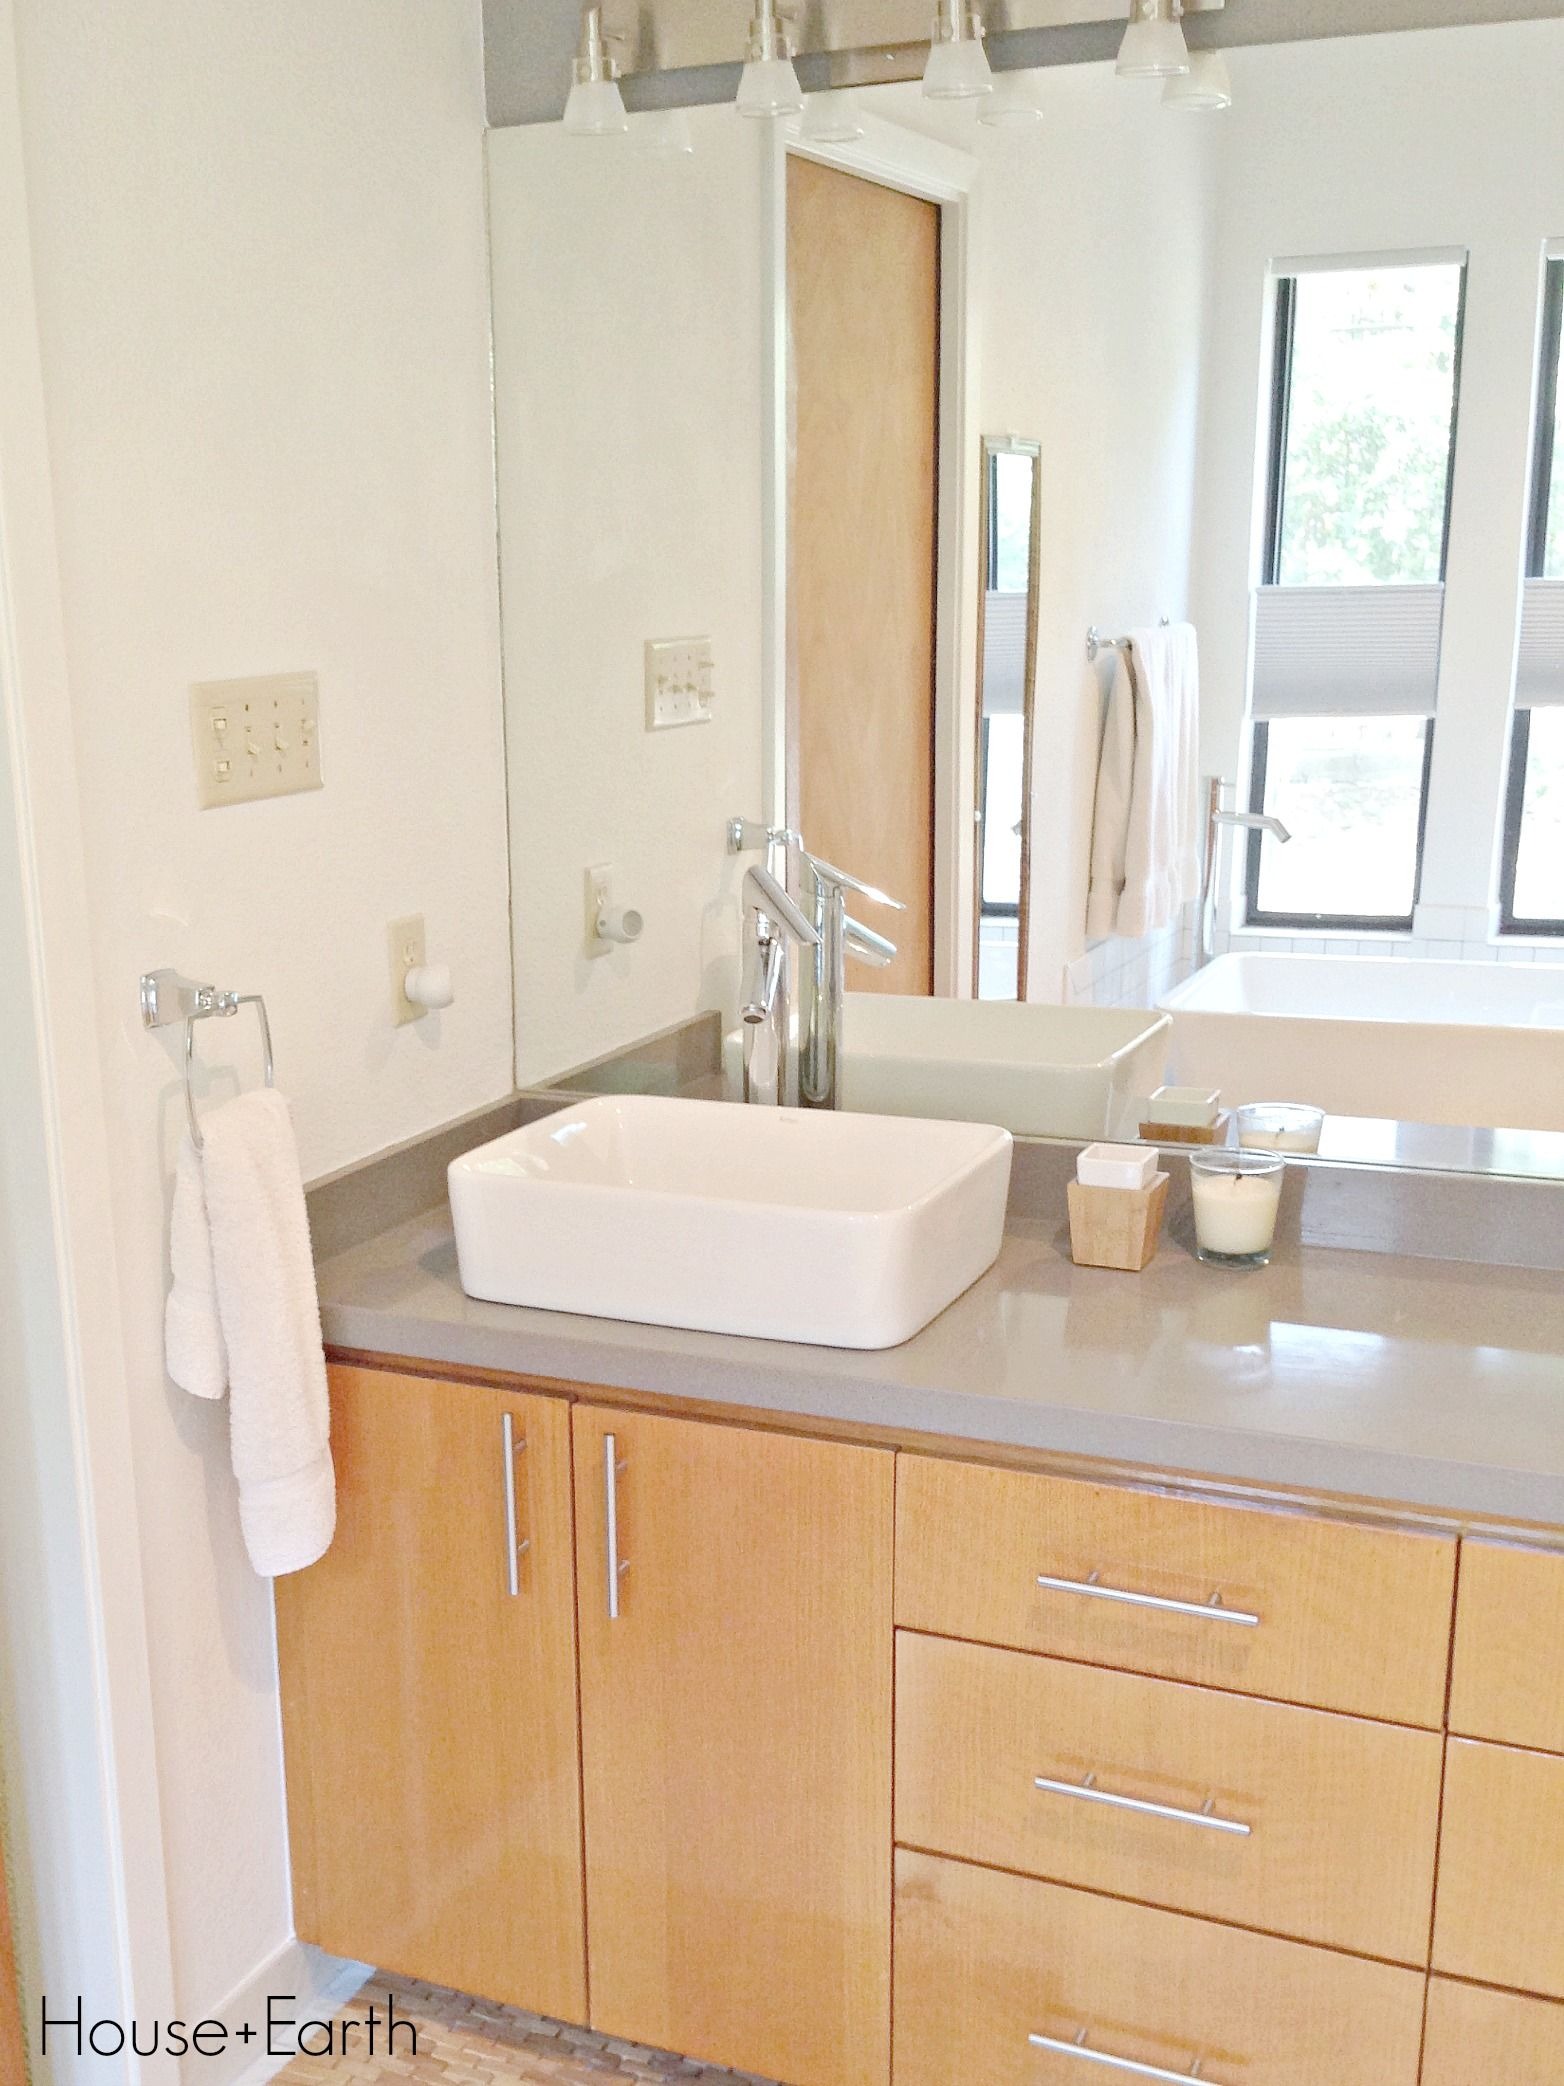 Photo Gallery For Website Source says Bathroom Renovation Silestone Grey Expo counter top white vessel sinks